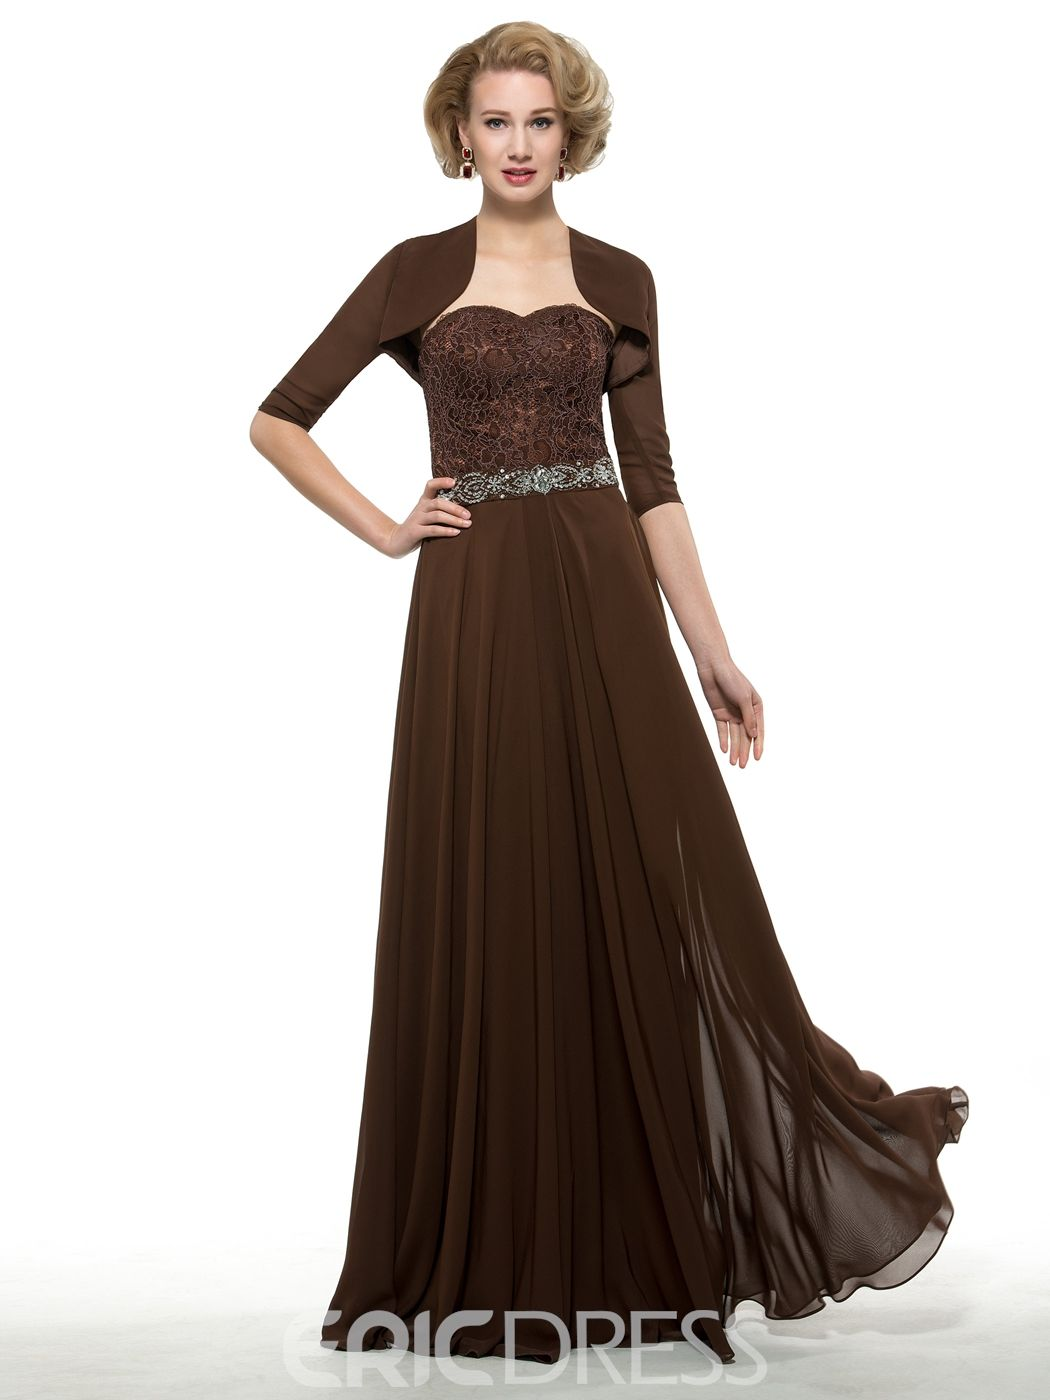 Dress with jacket for wedding  Elegant Sweetheart A Line Mother Of The Bride Dress With Jacket